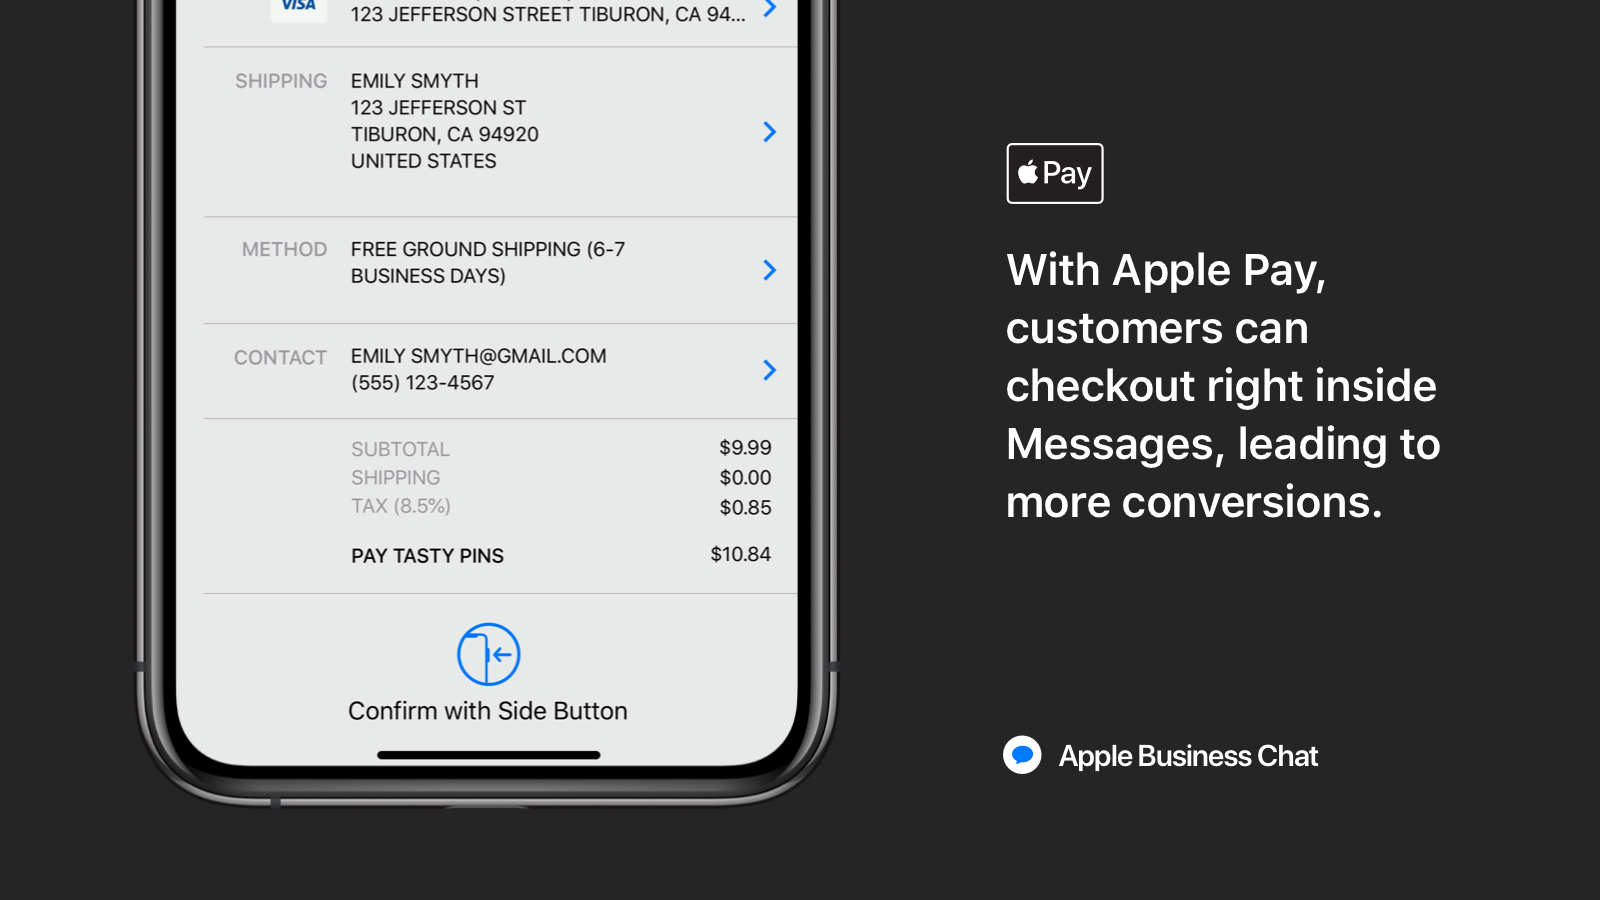 Your customers can checkout with Apple Pay right in Messages